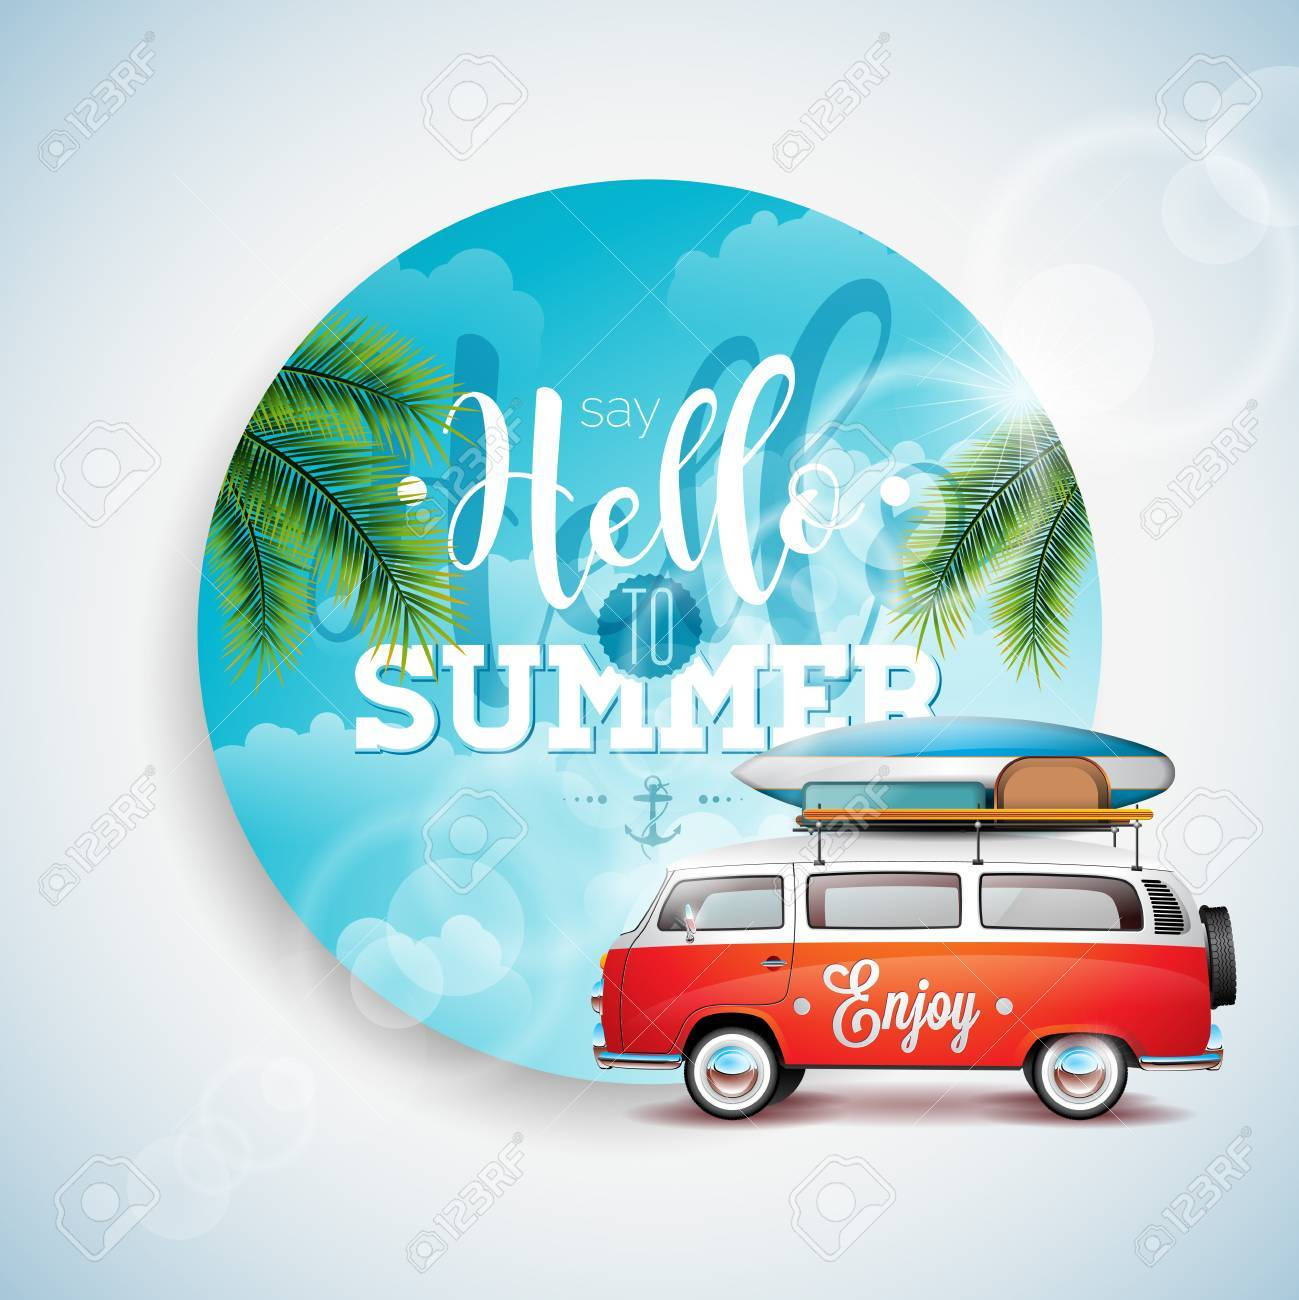 Say Hello to Summer Holiday typographic illustration on tropical plants floral background. Blue sky and travel van. - 68957945